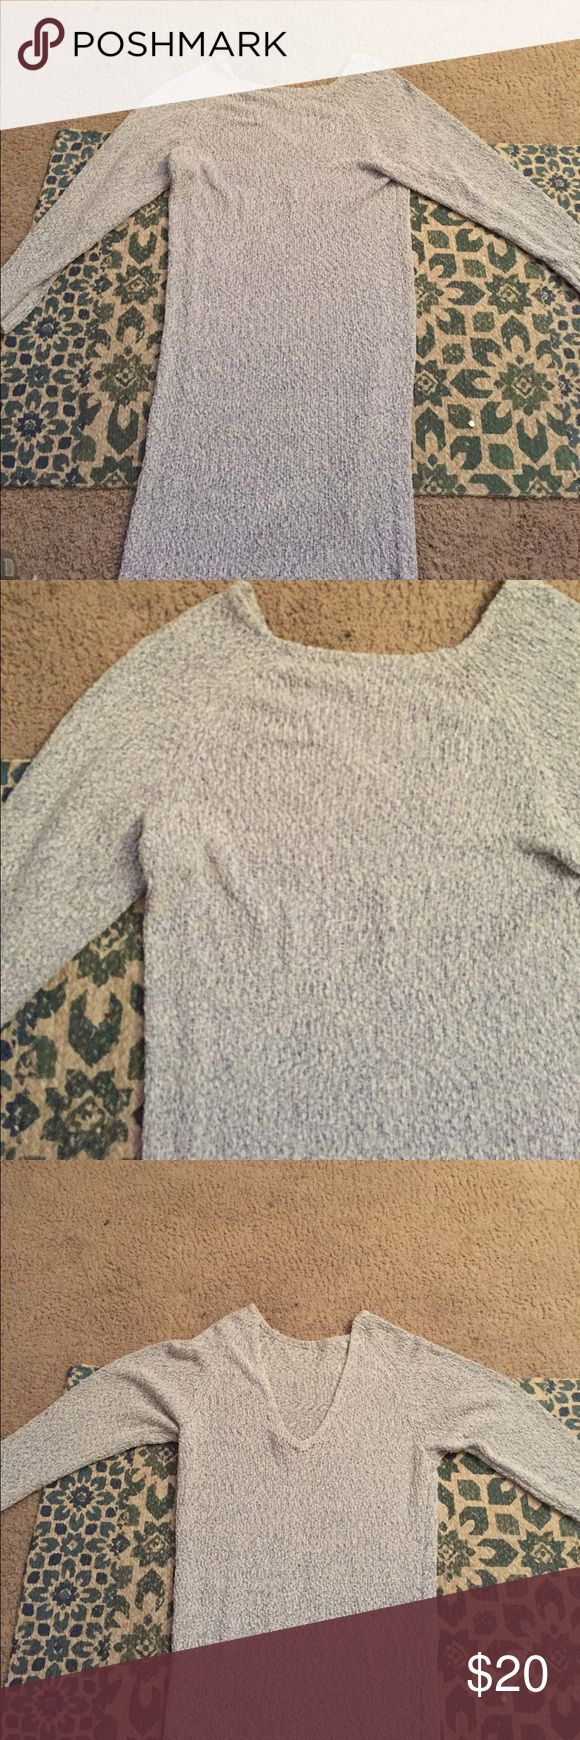 H&M Long sleeve sweater dress So soft and cozy! Long sleeve knit sweater dress with a v cut out back! Length is about to the shins! Super cute for just relaxing or going out! Beautiful light blue and white knit. H&M Dresses Long Sleeve